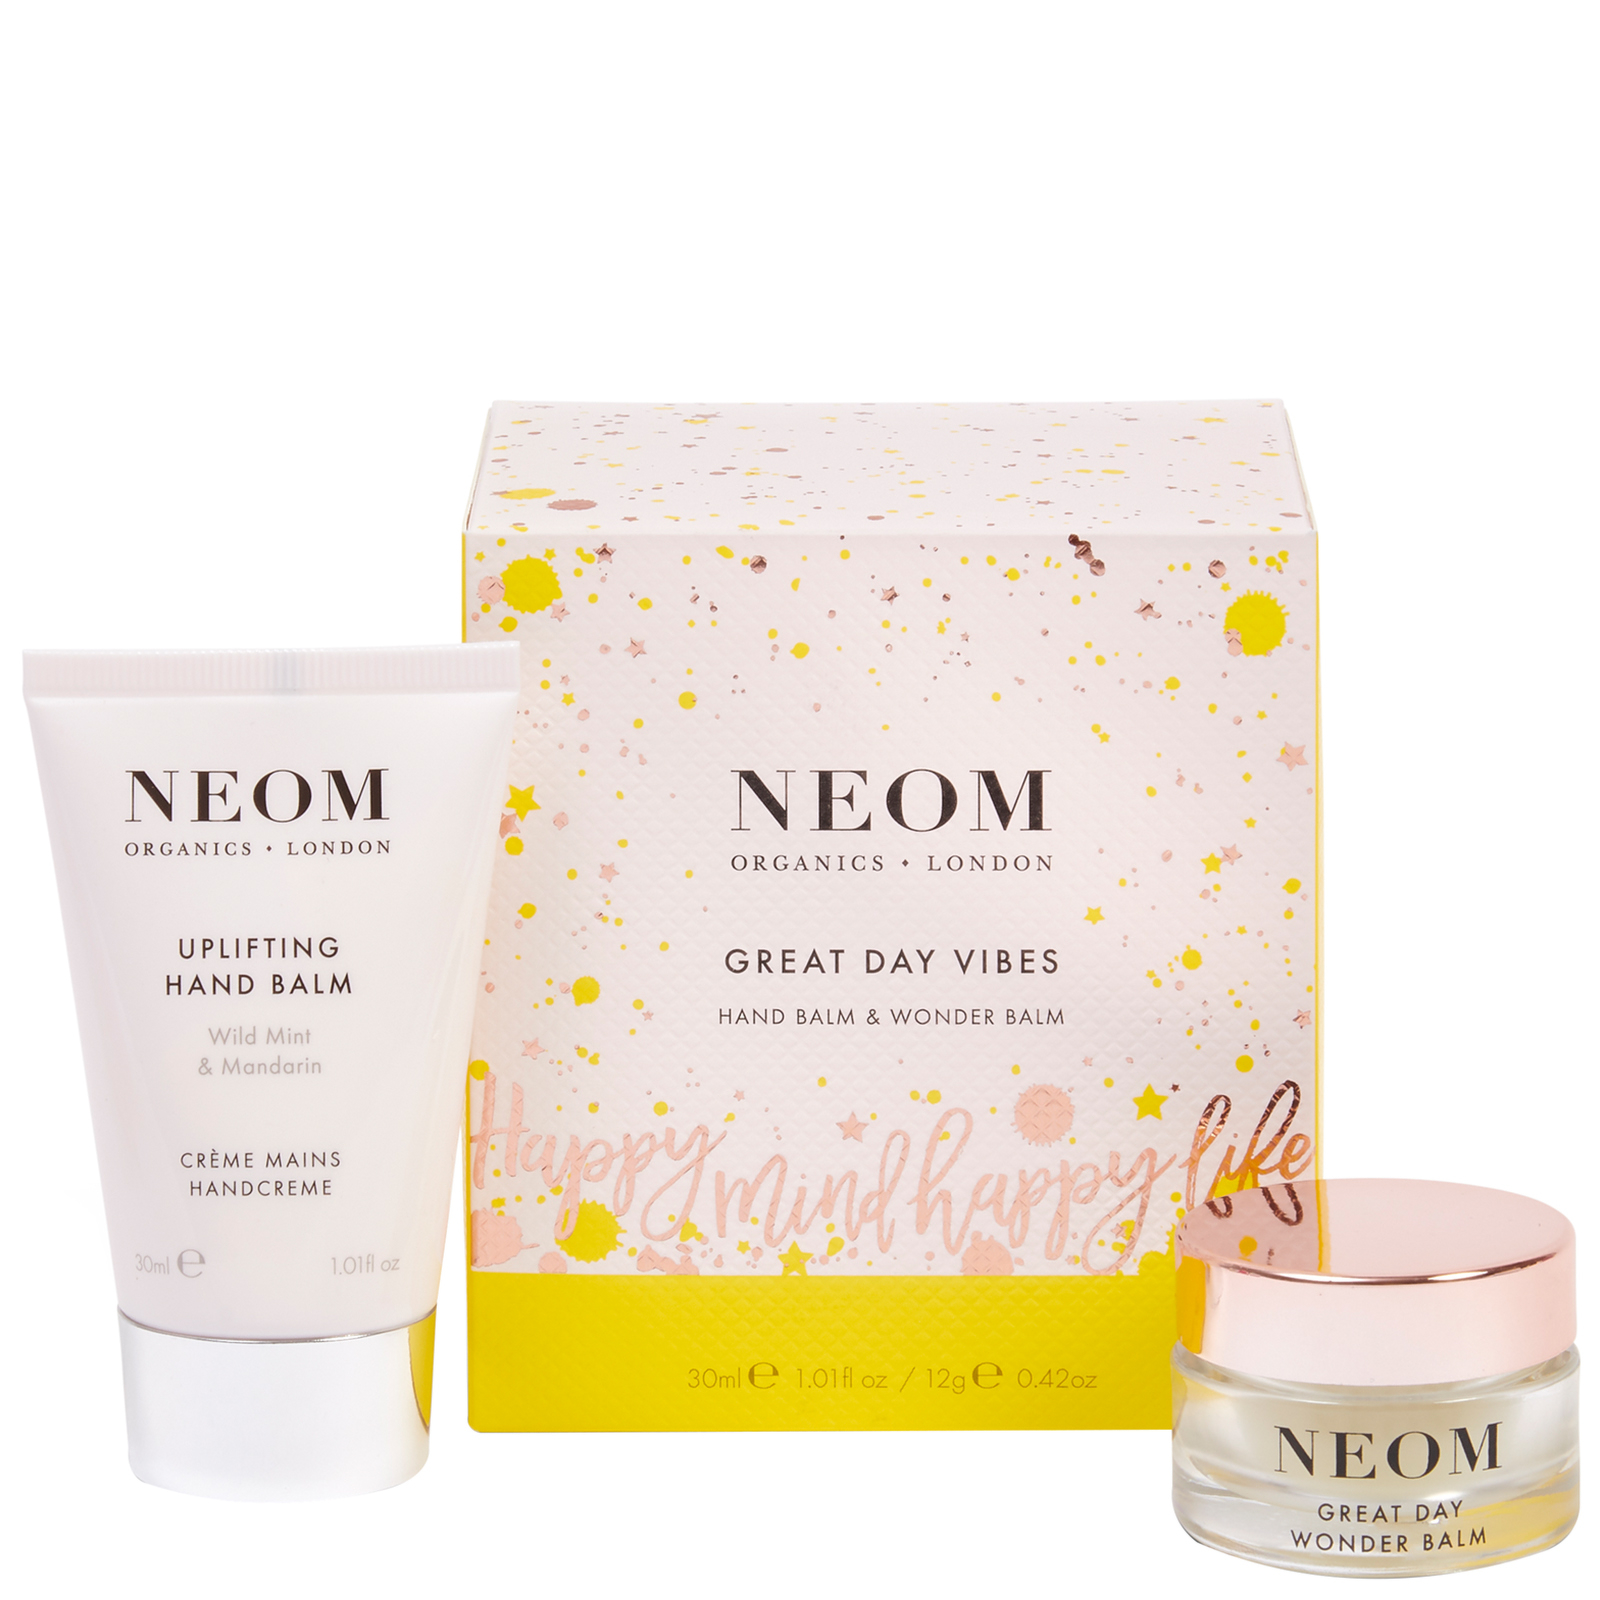 Neom Organics London Christmas 2020 Great Day Vibes Gift Set